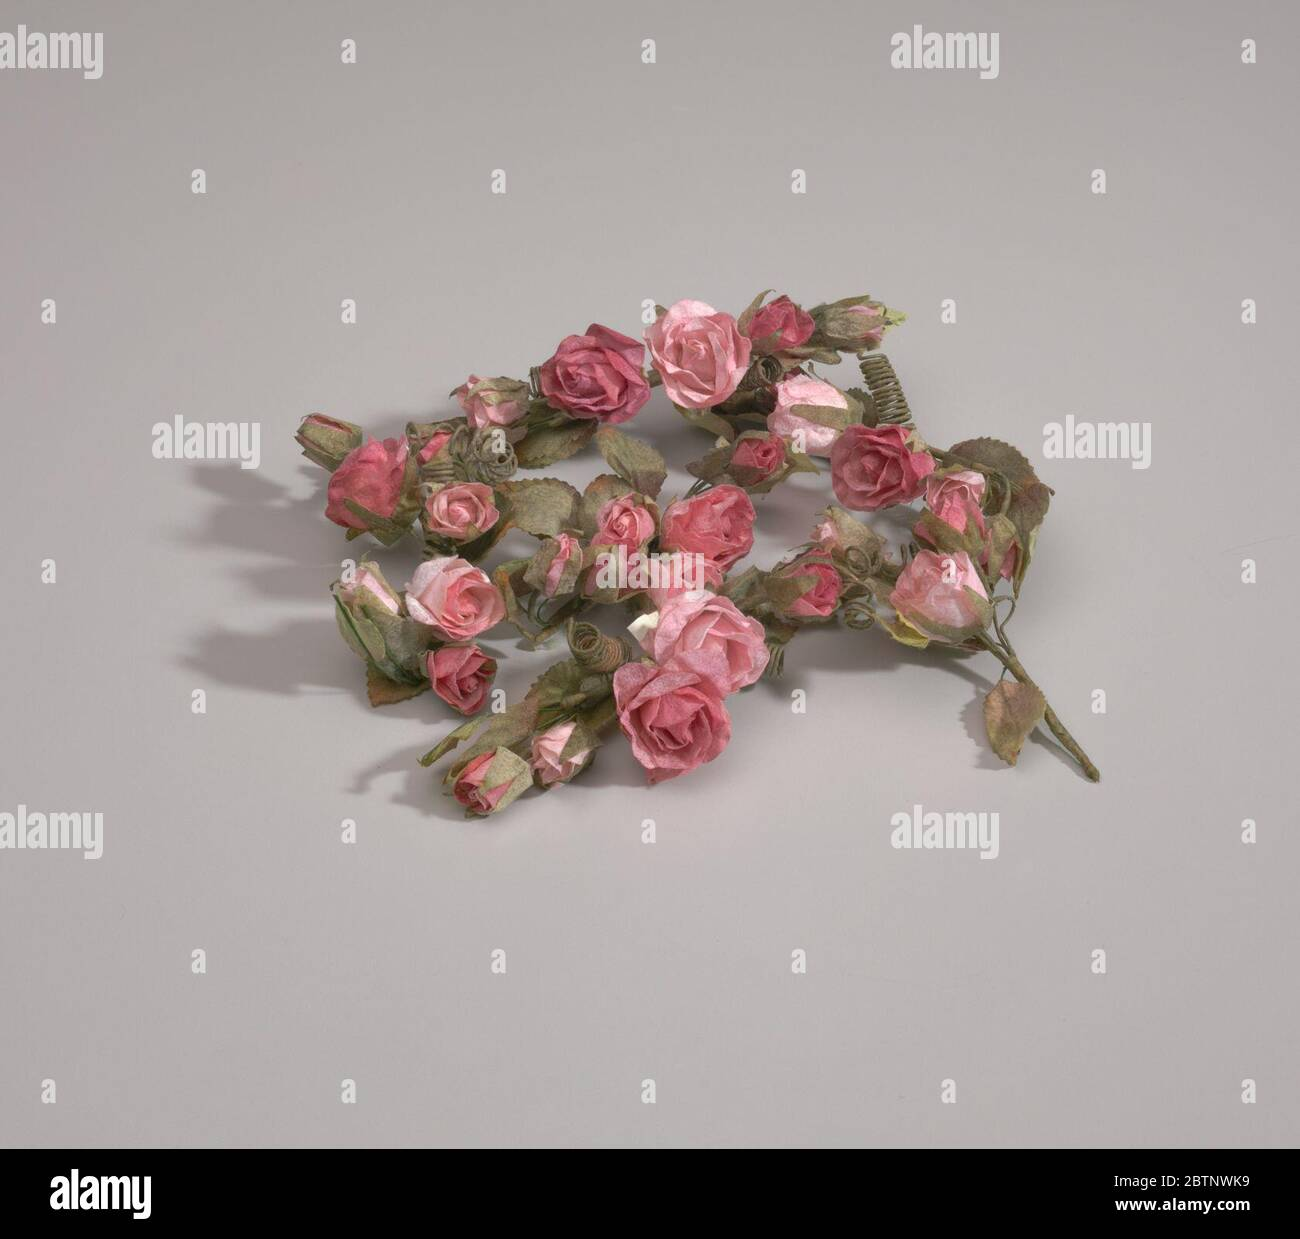 Artificial Pink Flowers From Maes Millinery Shop Artificial Pink Paper Flowers On Green Plastic Stems With Coiled Paper Wrapped Wire Pieces Coming Off The Stems The Flowers Are Tied With String To The